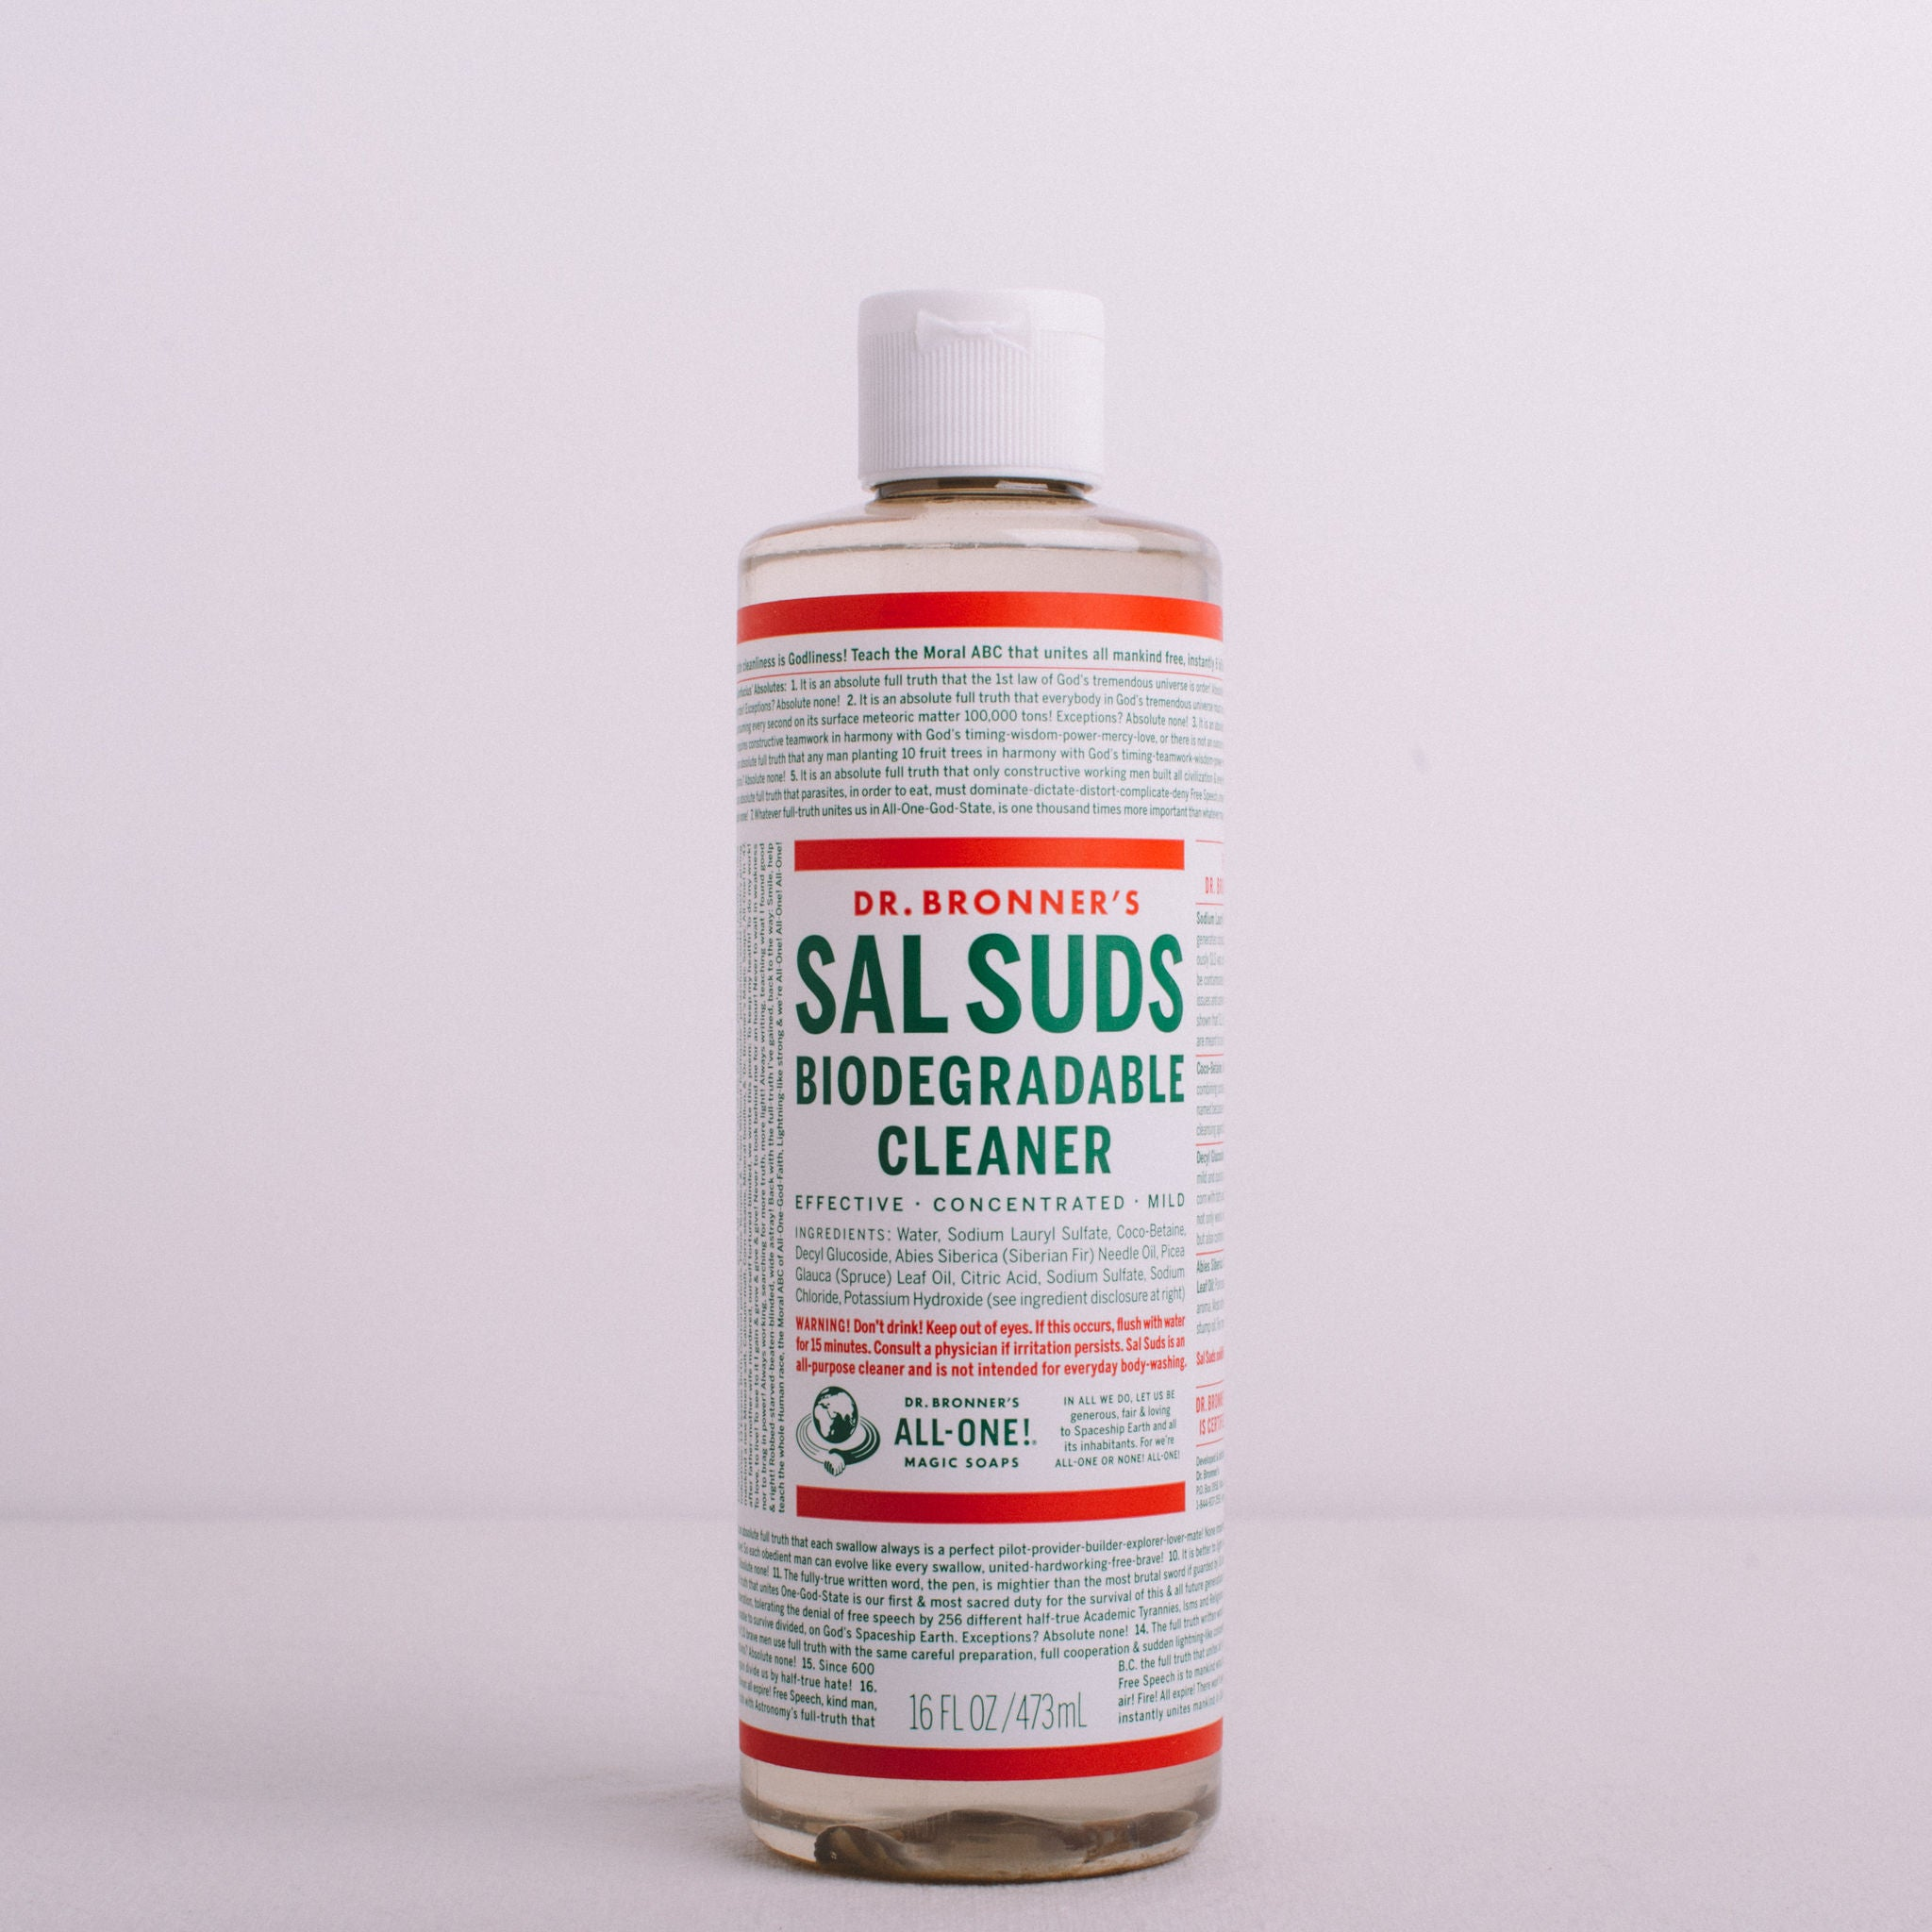 DR BRONNER'S || SAL SUDS